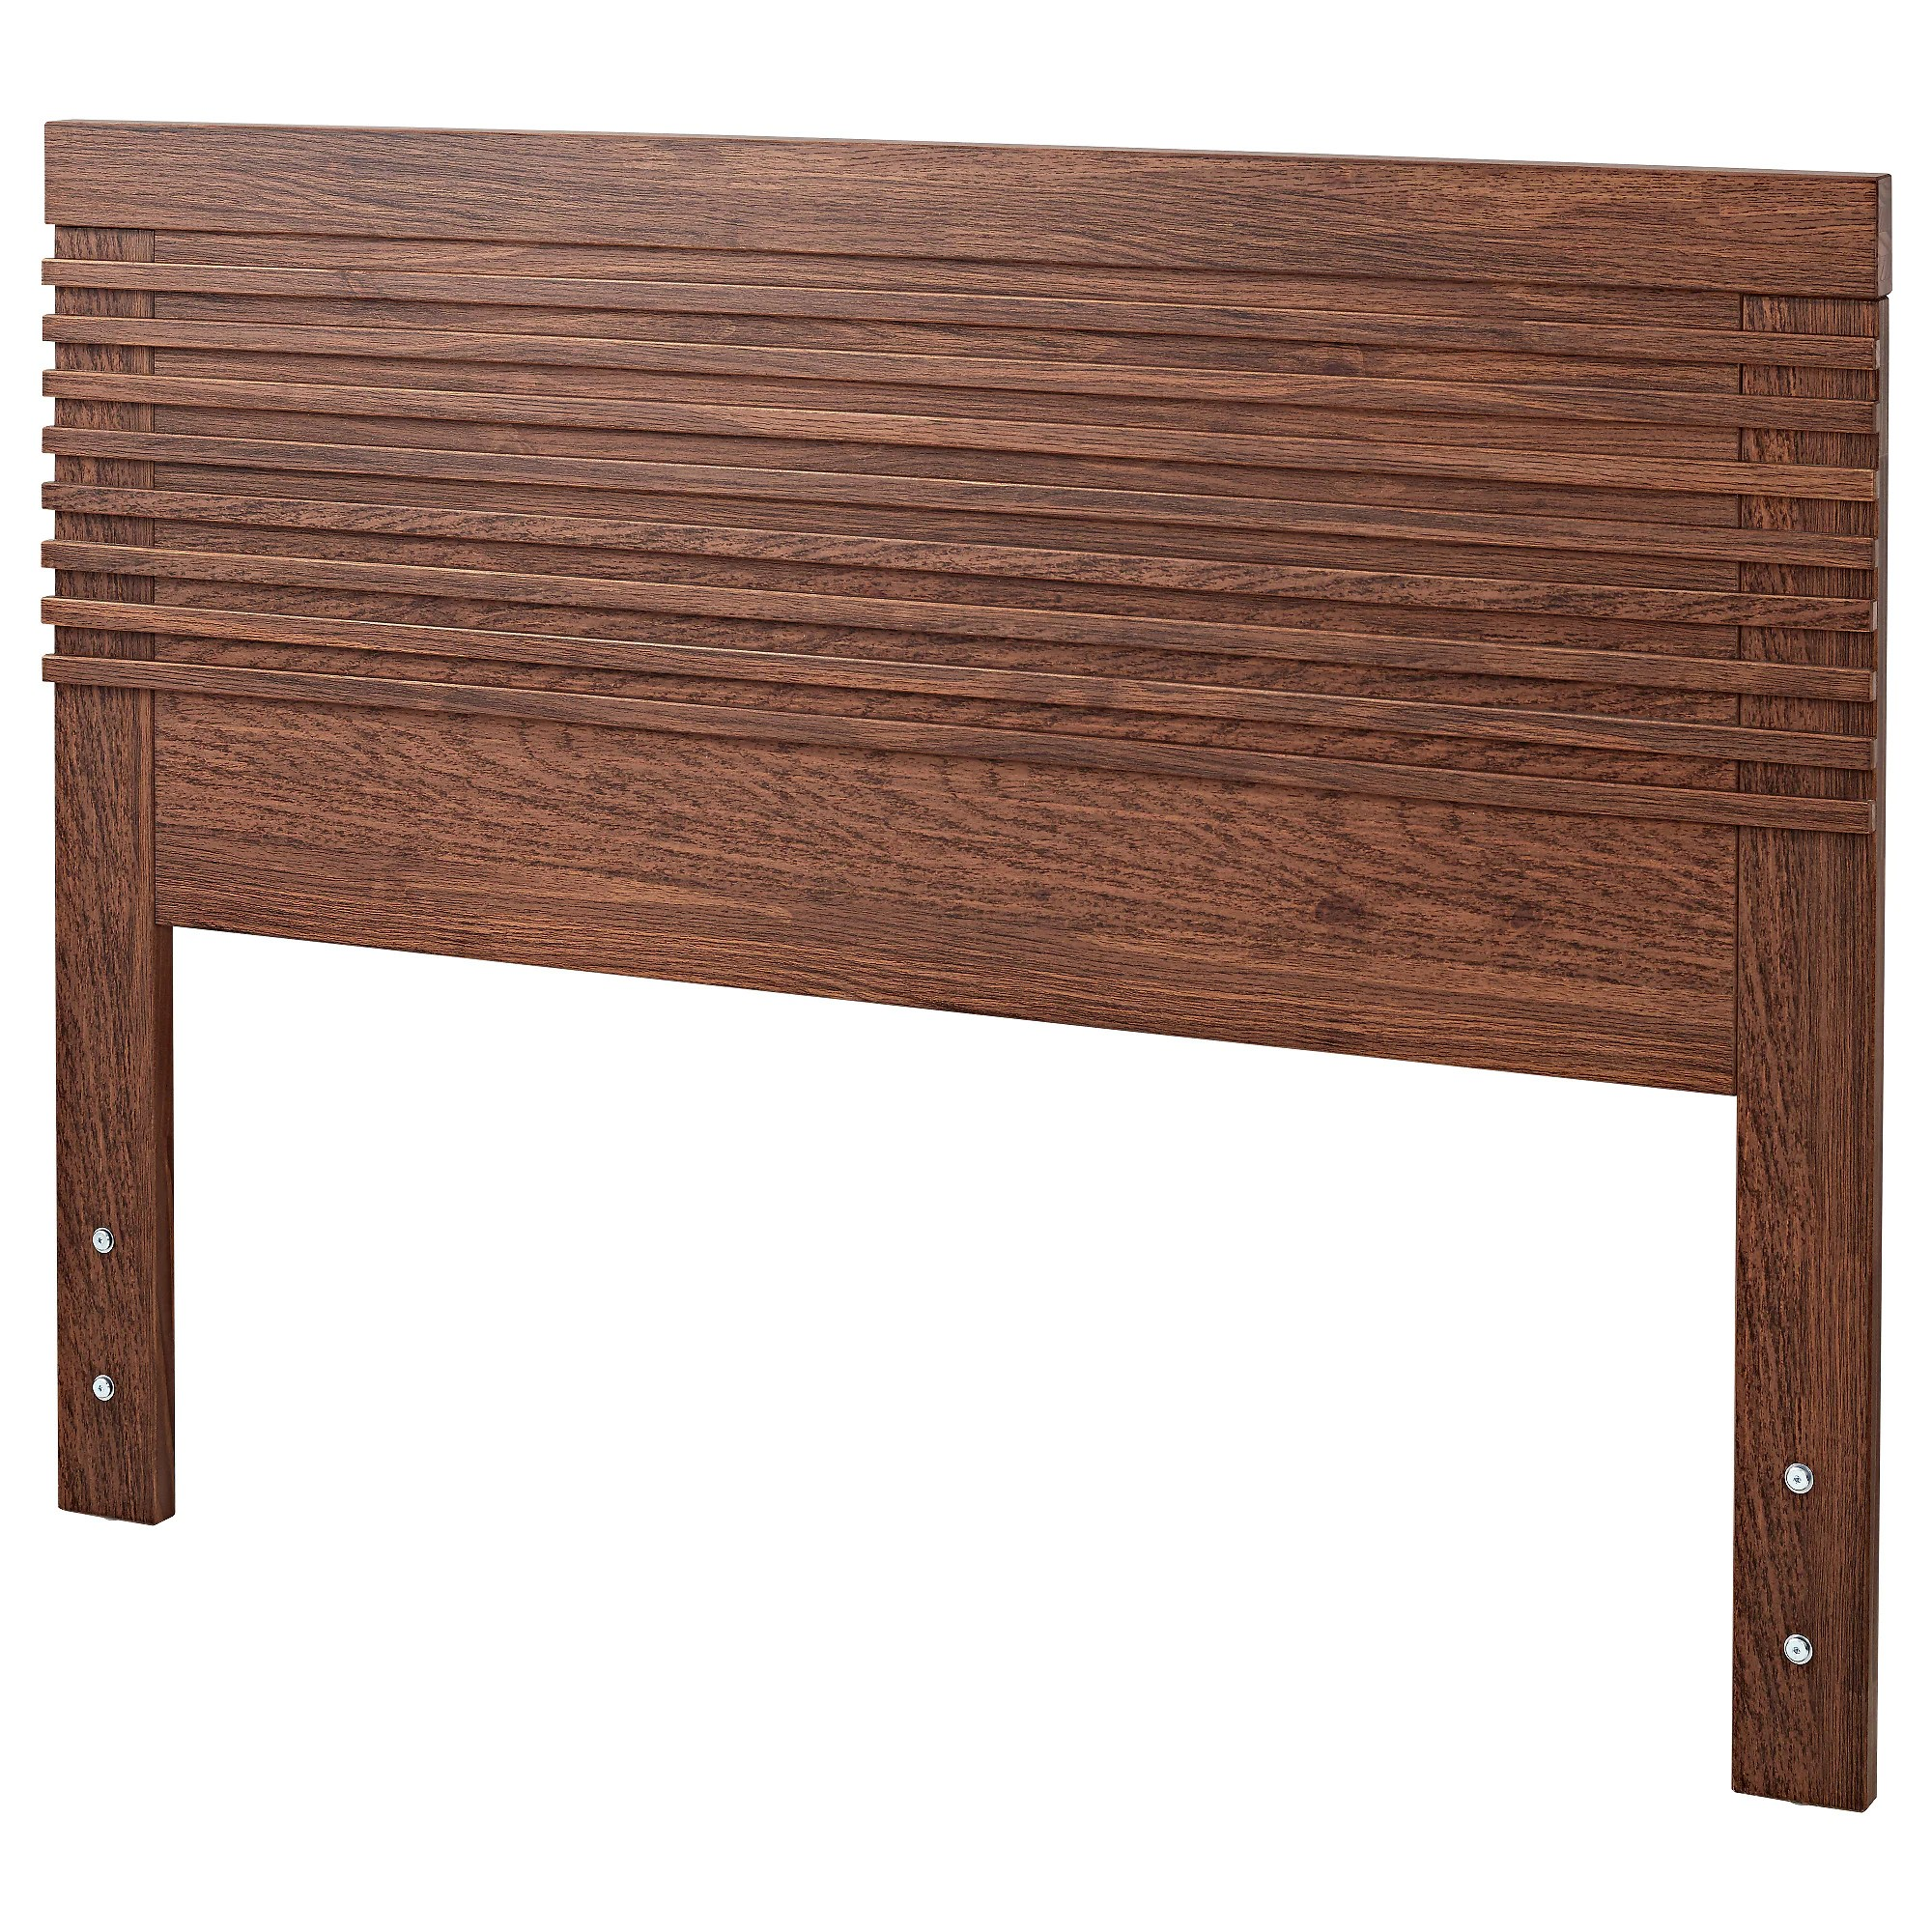 Woodworking Headboard With Brilliant Styles